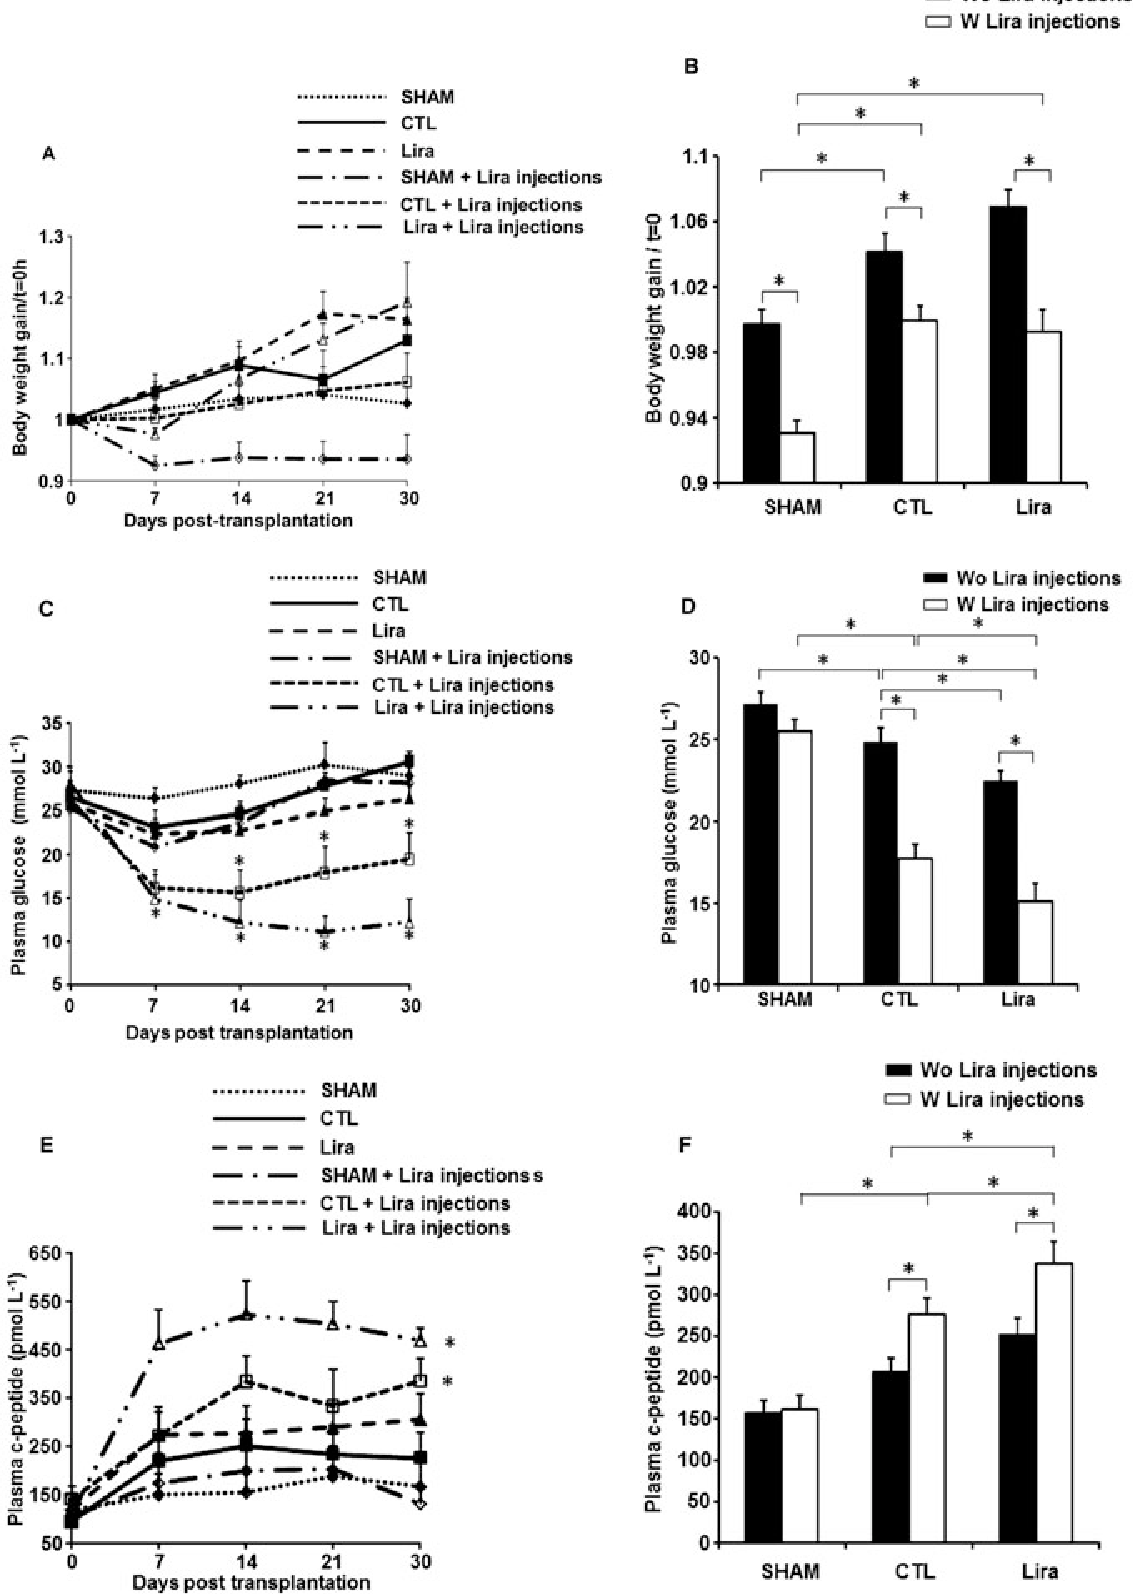 Figure 5 Metabolic control in diabetic rats after islet transplantation. Effects of liraglutide (Lira) on (A) body weight, expressed relative to weight on day 0, during the 30 days of the experiment and (B) mean body weight gain over the entire experiment. In (C), fasting glycaemia during the 30 days of the experiment and (D) mean fasting glycaemia over the entire experiment. In (E), fasting C-peptide levels during the 30 days of the experiment and (F) mean fasting levels of C-peptide over the entire experiment. The experimental groups are as follows: sham; control (CTL) islet- or liraglutide-treated islet-transplanted groups of rats, with (W) or without (Wo) liraglutide injections. Results were expressed as mean ± SEM; n = 6 each group. * P < 0.05, significantly different as indicated; one-way ANOVA with Tukey's test.